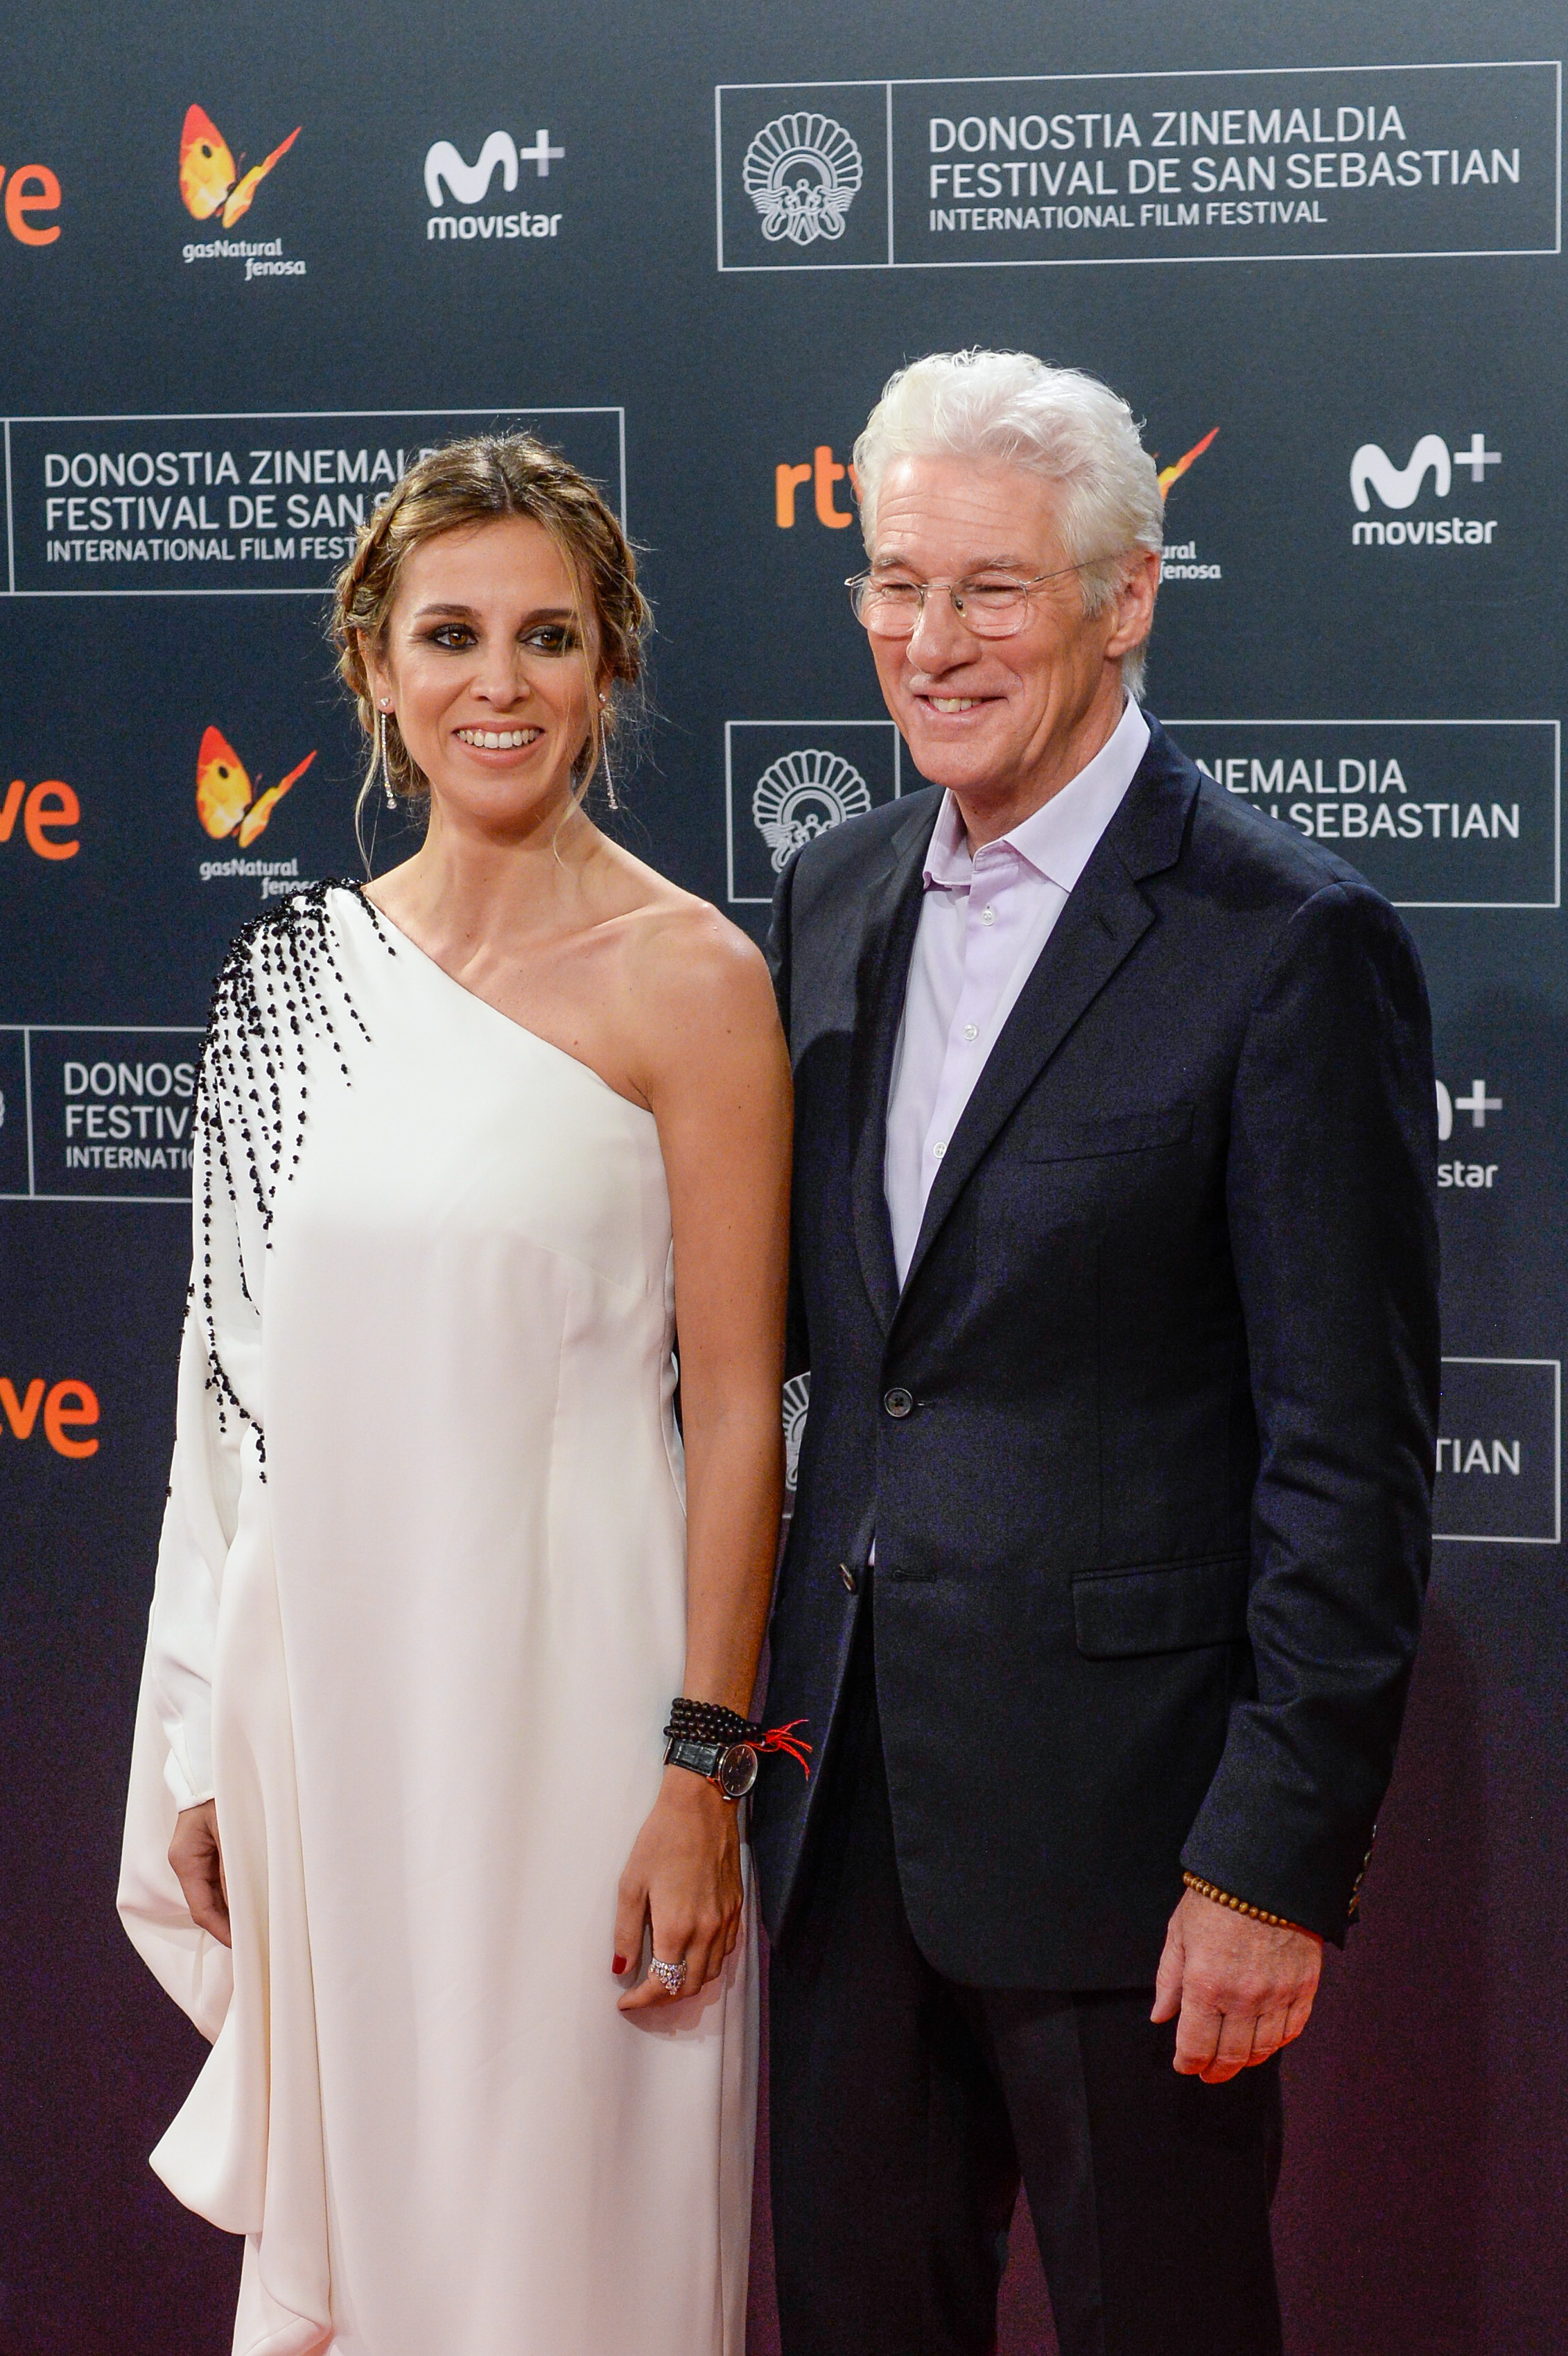 SAN SEBASTIAN, SPAIN - SEPTEMBER 24: Alejandra Silva and Richard Gere attends the red carpet of the closing gala of 64th San Sebastian Film Festival at Kursaal on September 24, 2016 in San Sebastian, Spain. (Photo by Carlos Alvarez/Getty Images)